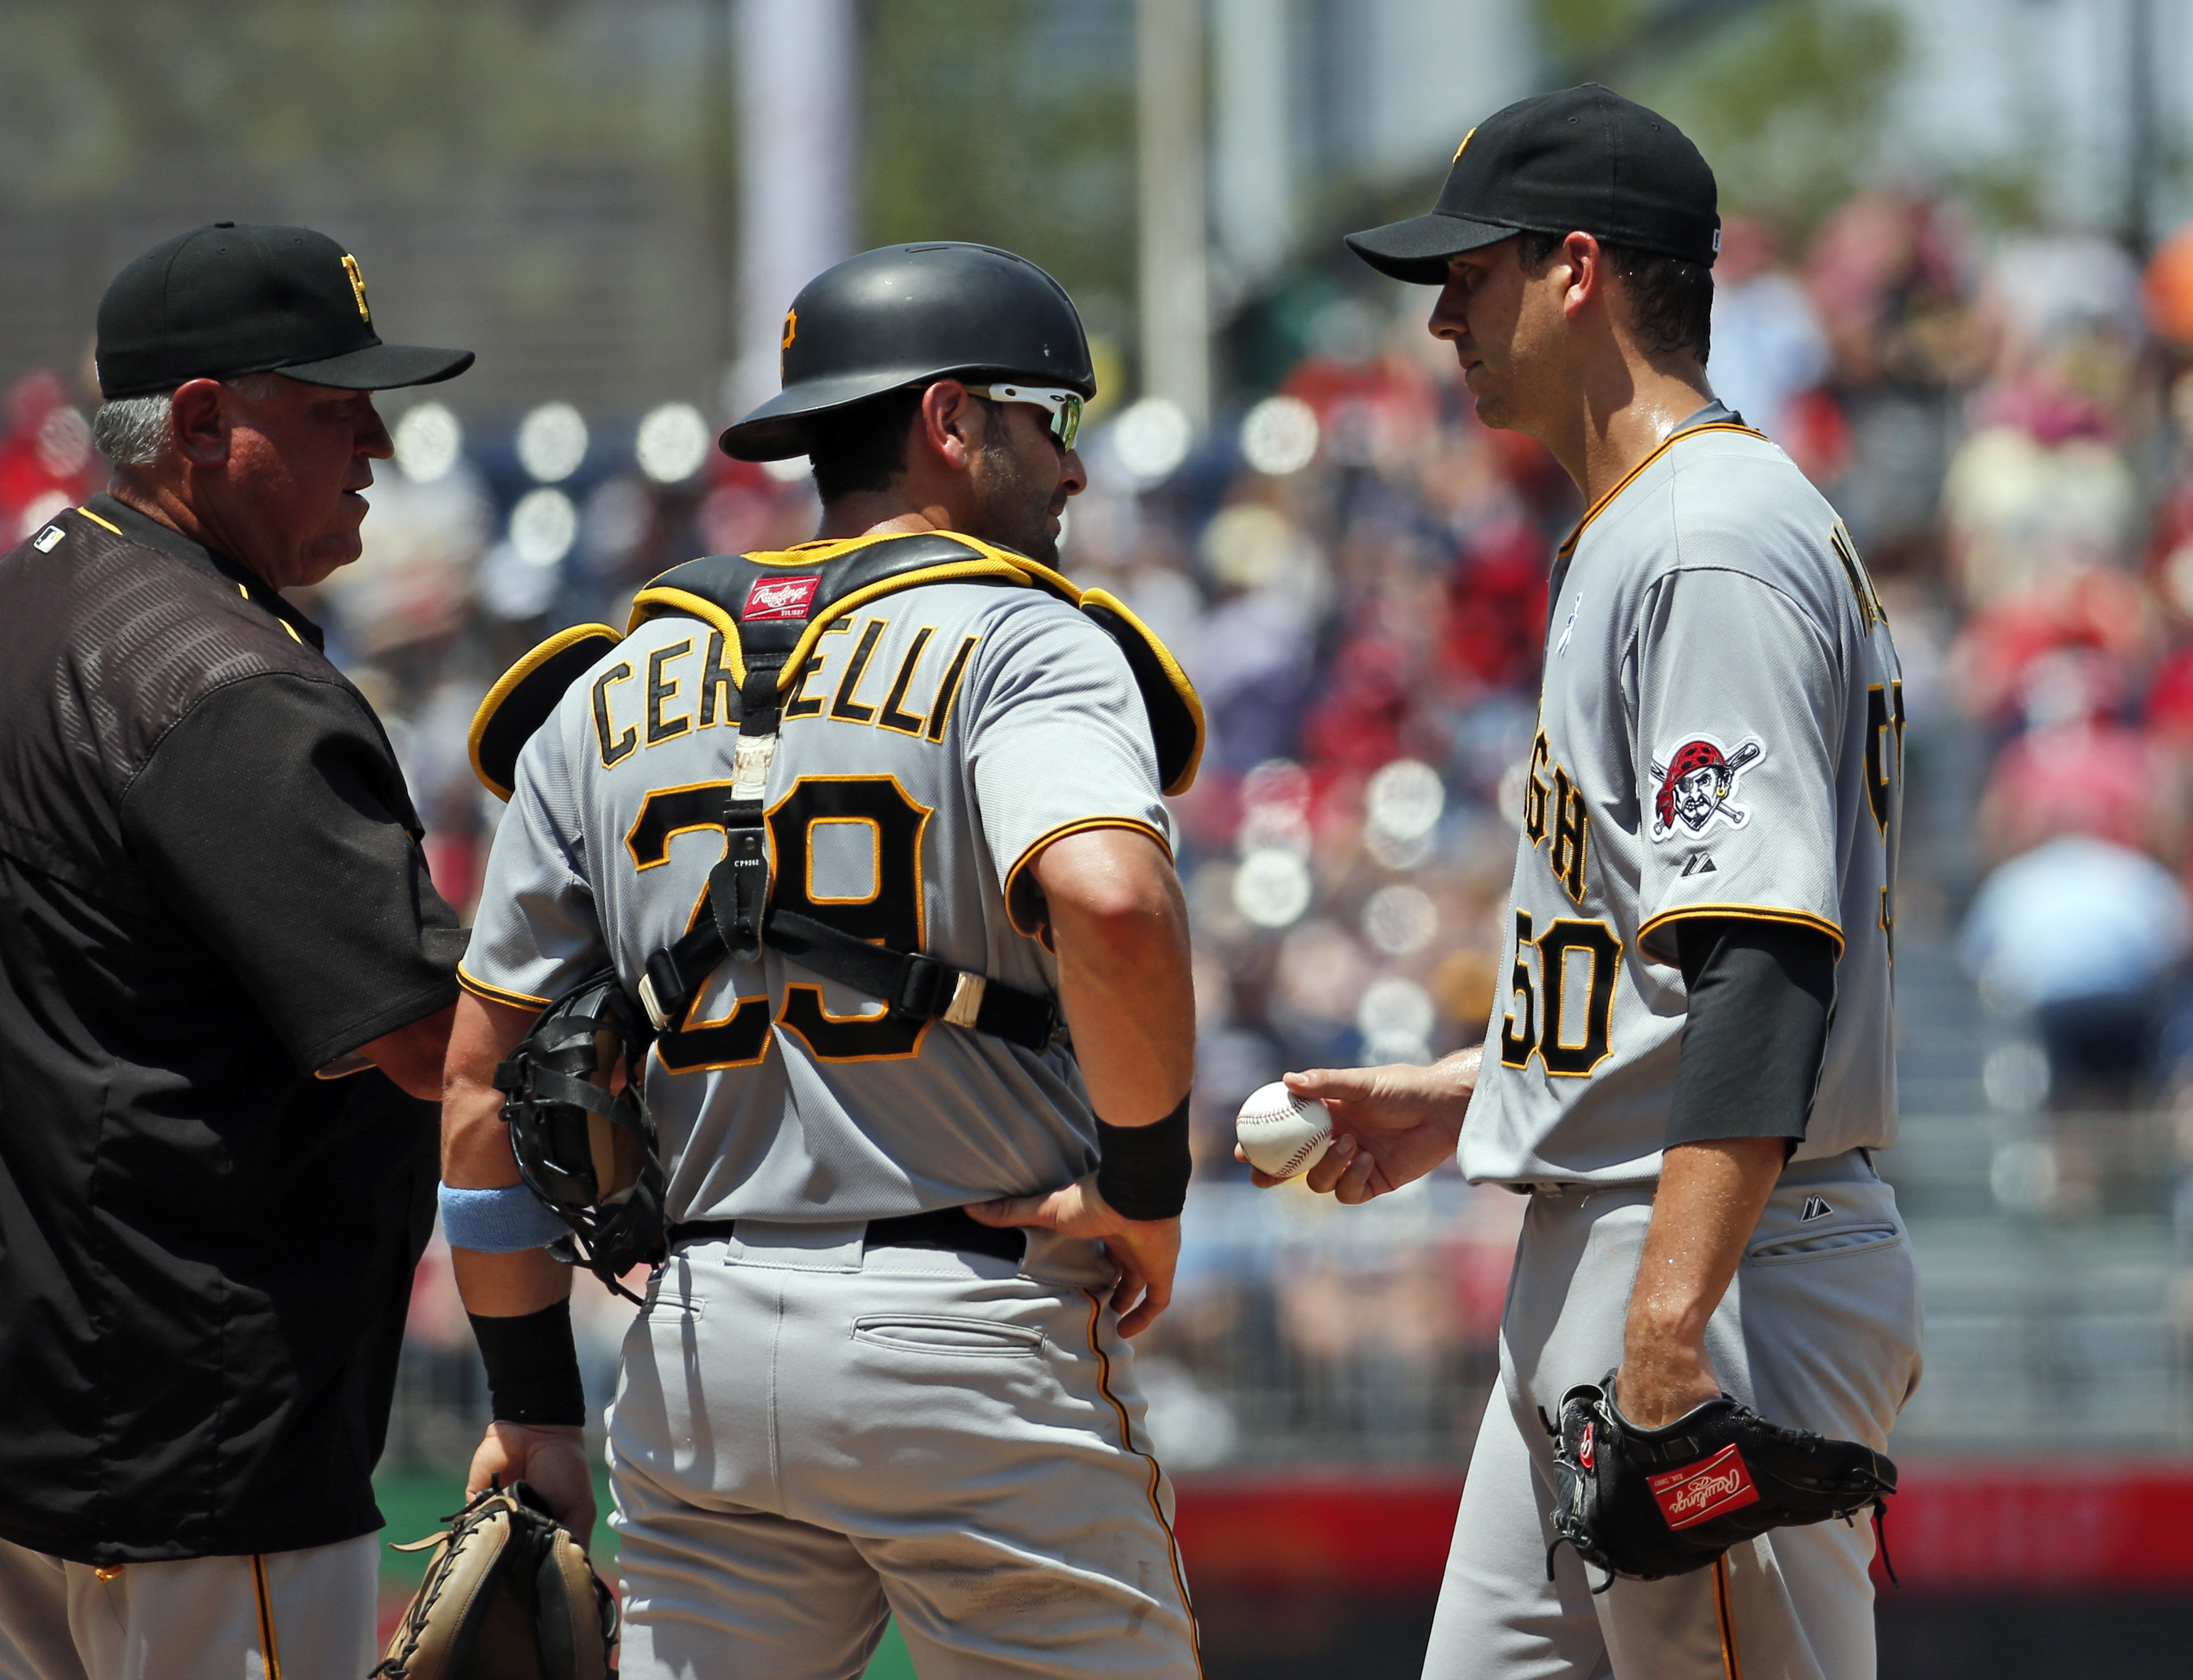 Pittsburgh Pirates manager Clint Hurdle, left, relieves starting pitcher Charlie Morton (50) with catcher Francisco Cervelli (29) nearby, during the first inning of a baseball game against the Washington Nationals at Nationals Park, Sunday, June 21, 2015,